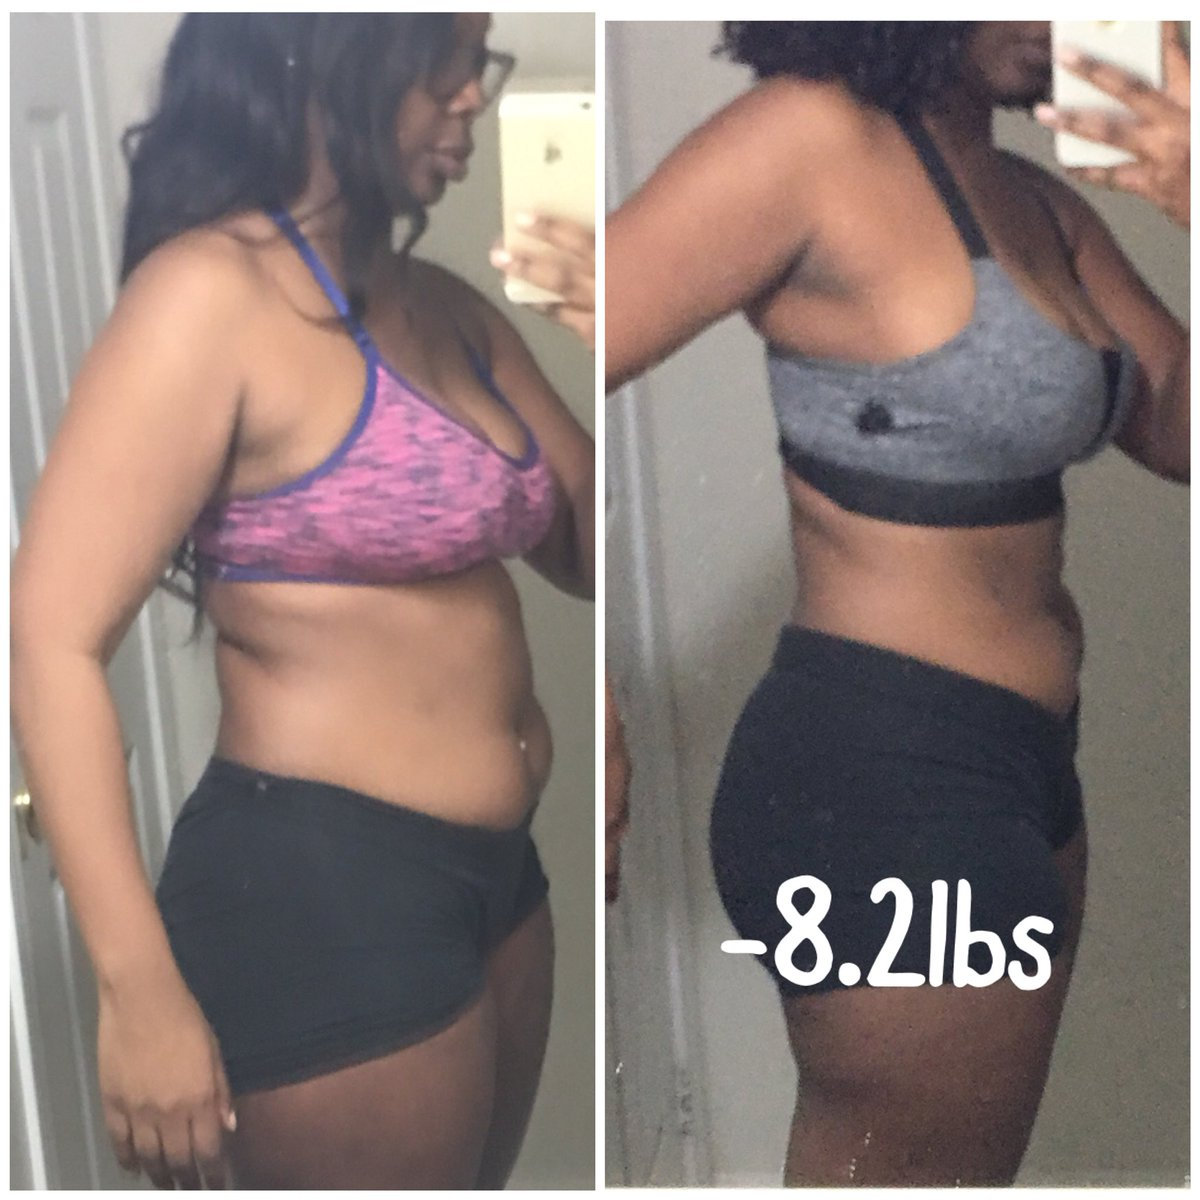 #IntermittentFasting combined with #KetoDiet  https:// youtu.be/jXSekhlSm3s     Follow My Weightloss Journey<br>http://pic.twitter.com/8nMbccgb17